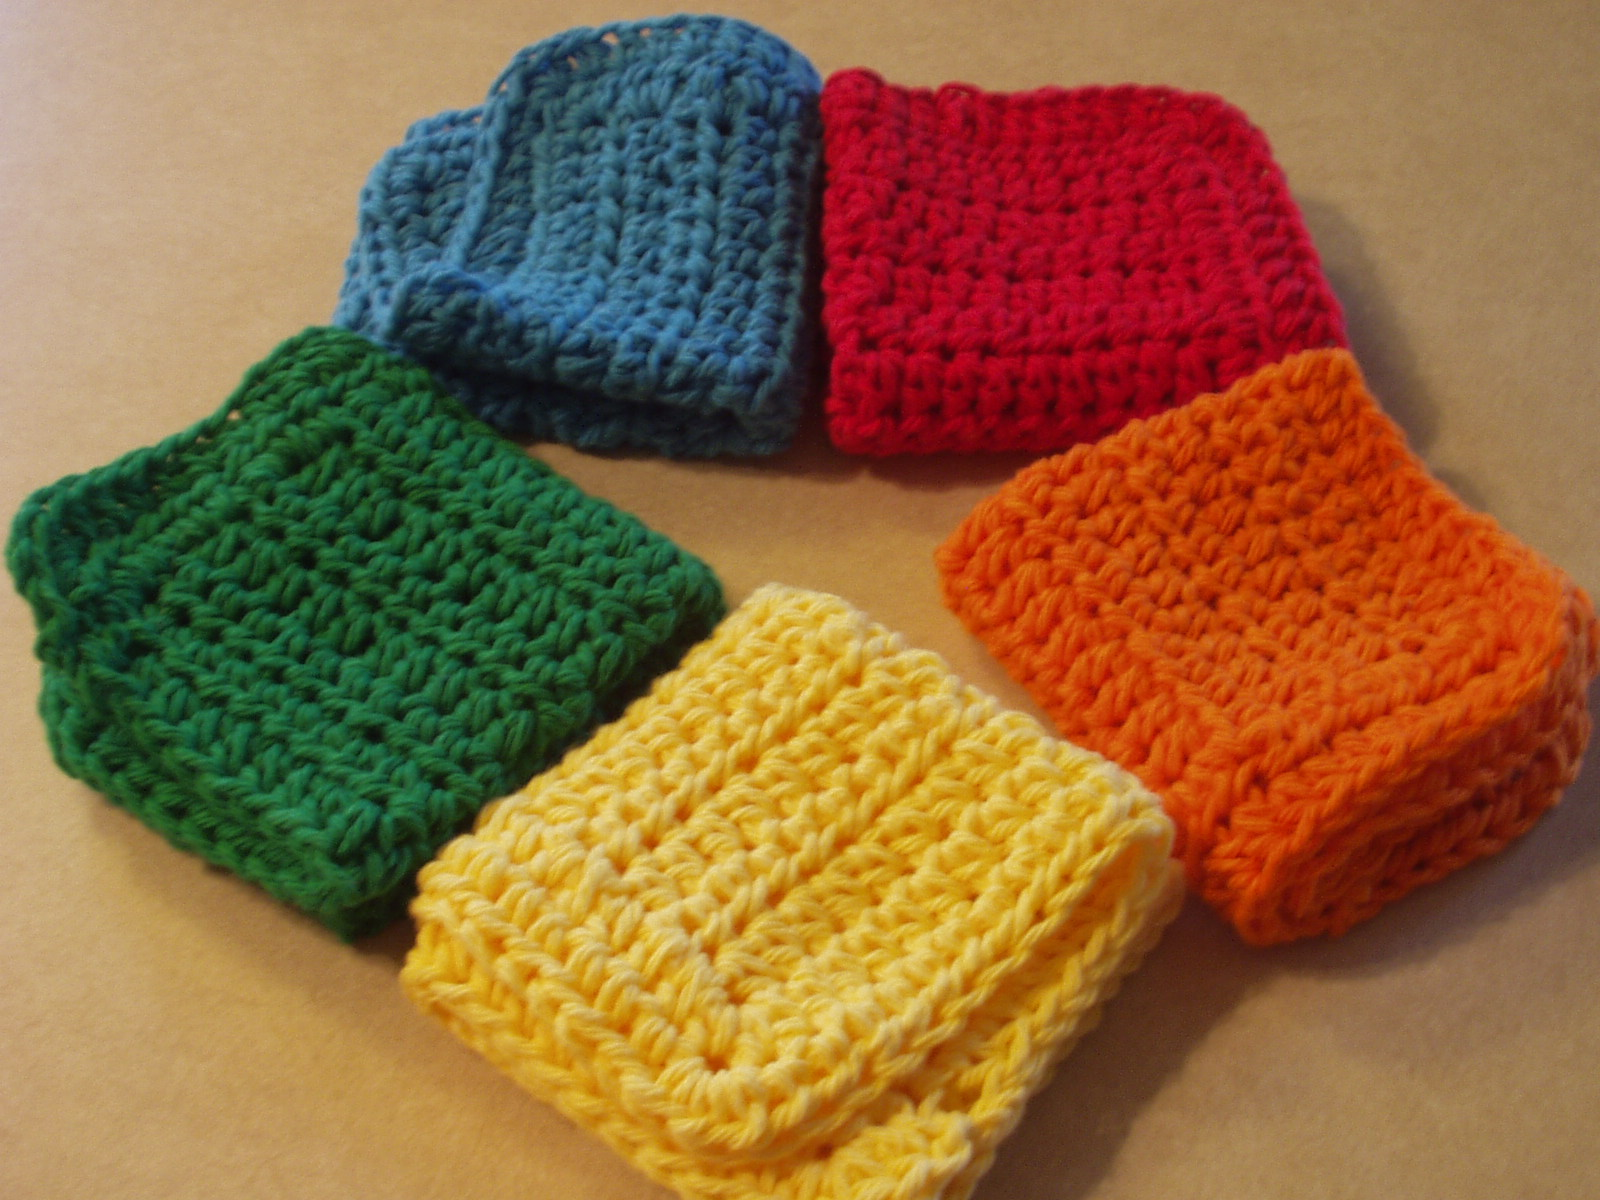 Crochet Patterns Dishcloths Free : Free Crochet Patterns Free Vintage Crochet Patterns